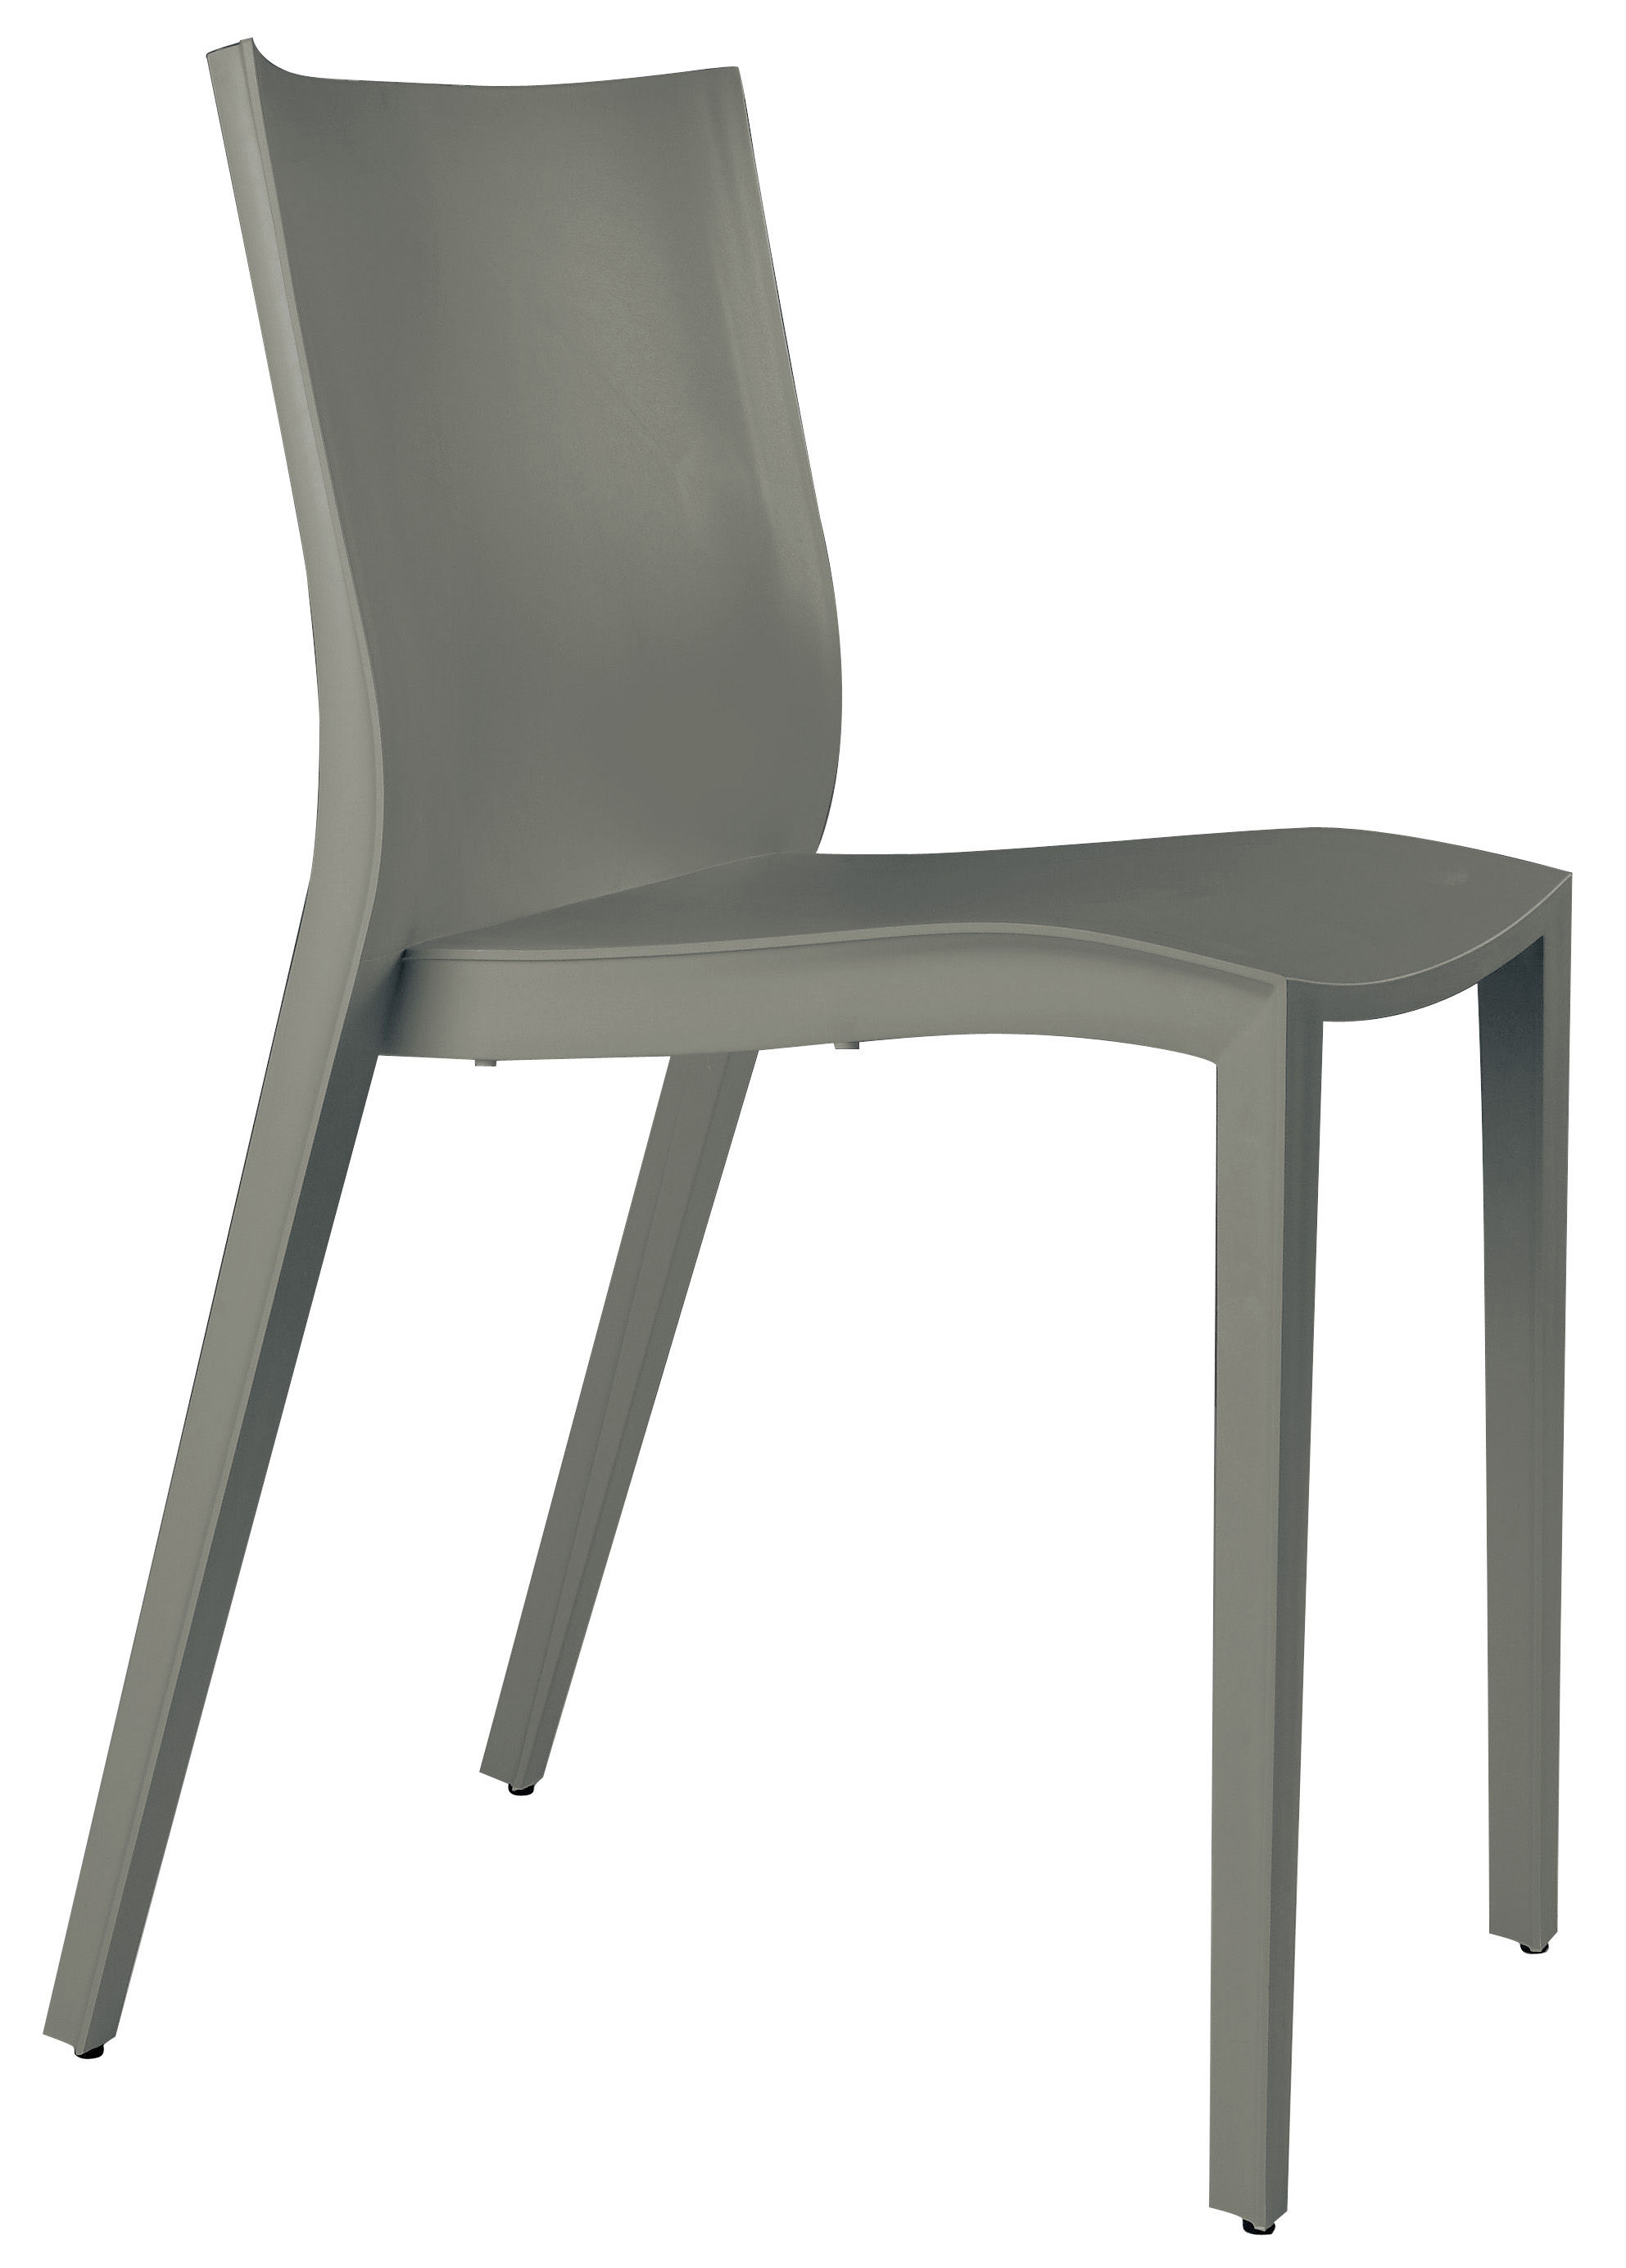 Chaise new slick slick gris souris xo for Chaise xo starck